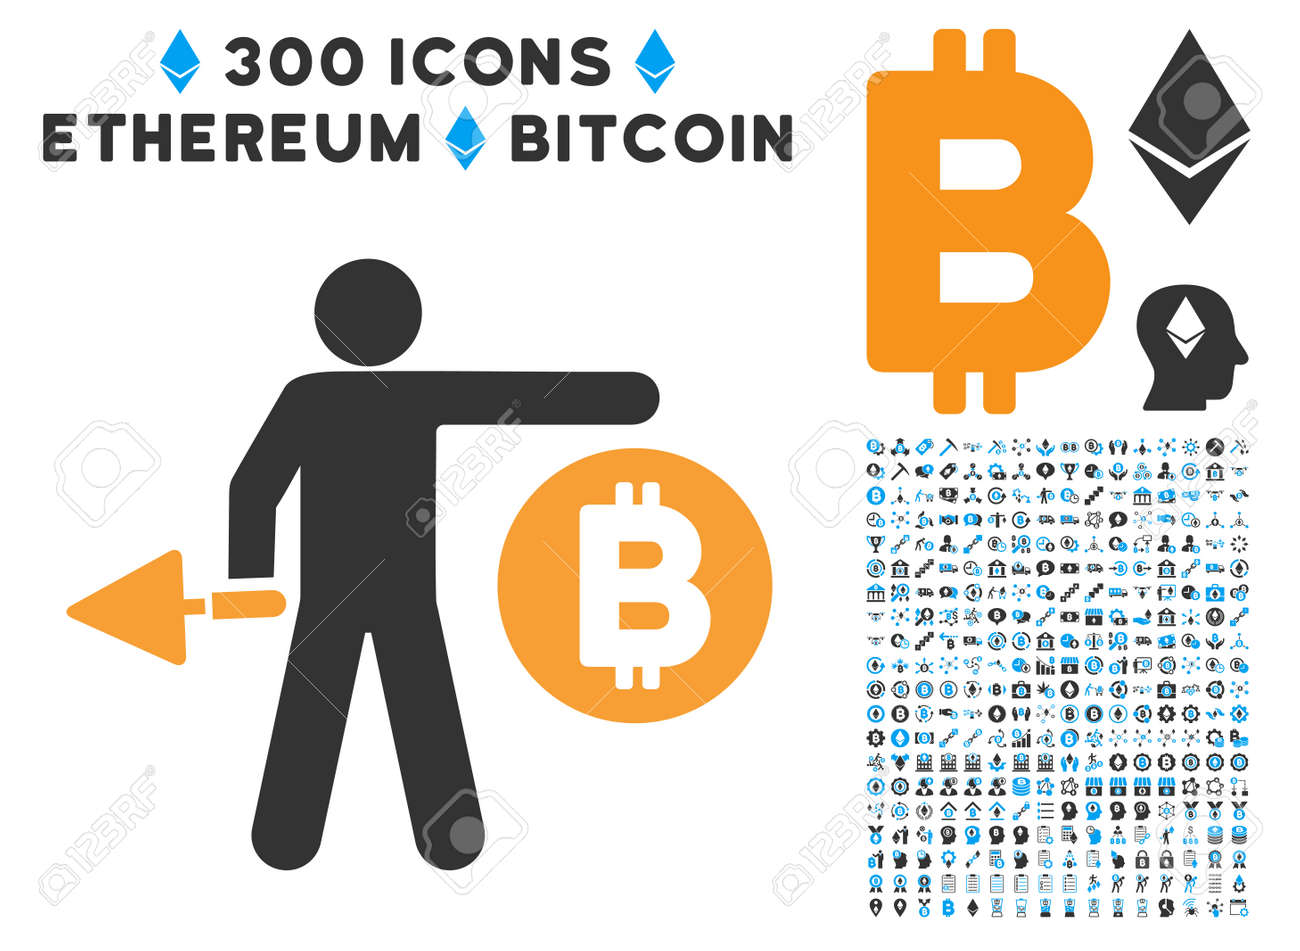 Bitcoin Miner Icon With 300 Blockchain Cryptocurrency Ethereum Smart Contract Design Elements